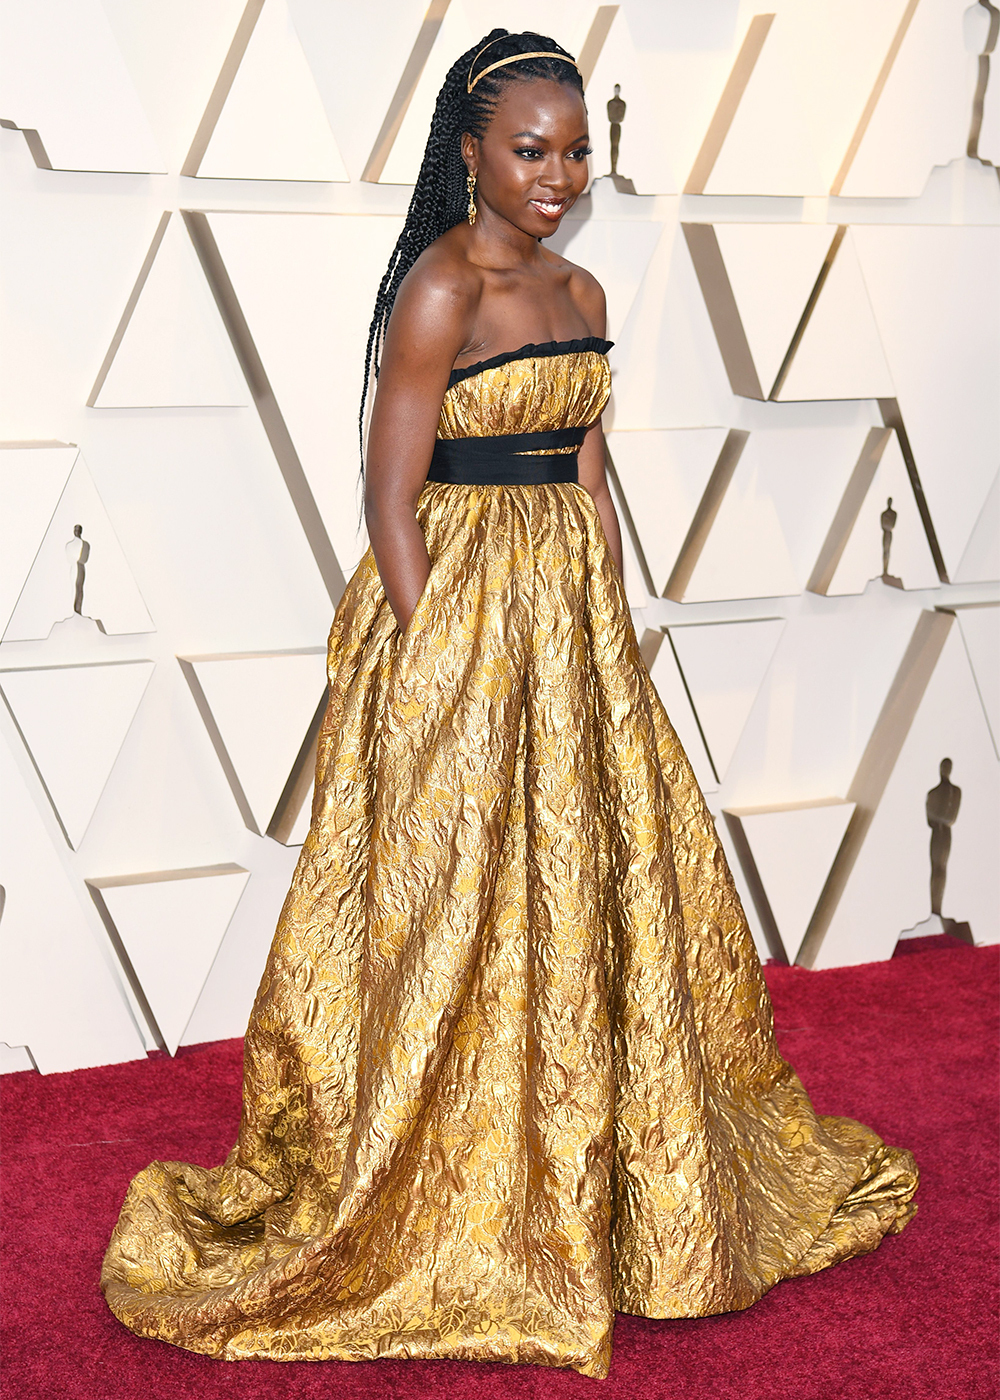 Oscars 2019 Red Carpet The Best Fashion 03 oscars 2019 red carpet Oscars 2019 Red Carpet : The Best Fashion Oscars 2019 Red Carpet The Best Fashion 03